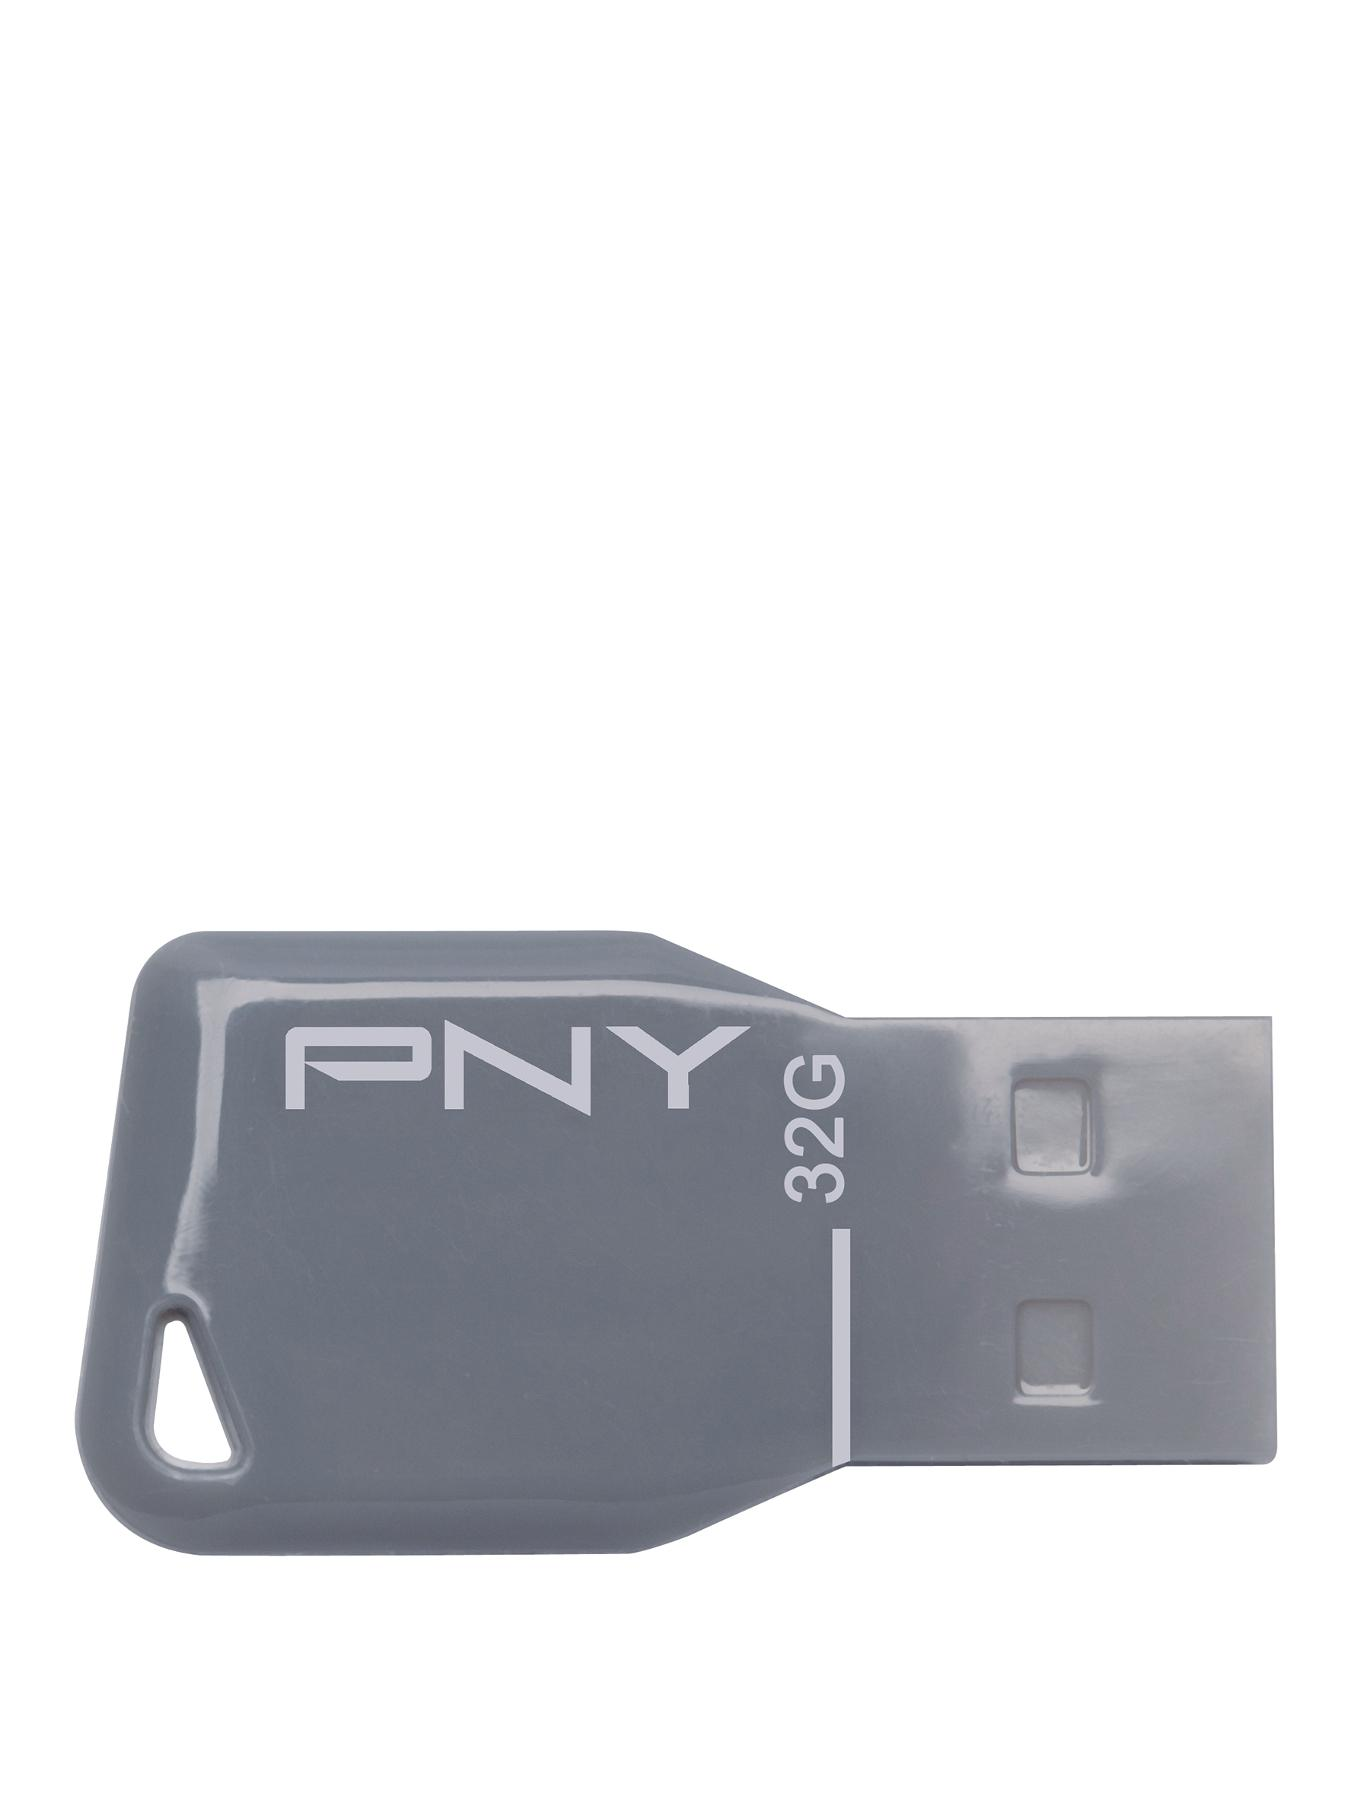 32Gb Key Attache USB - Grey, Grey